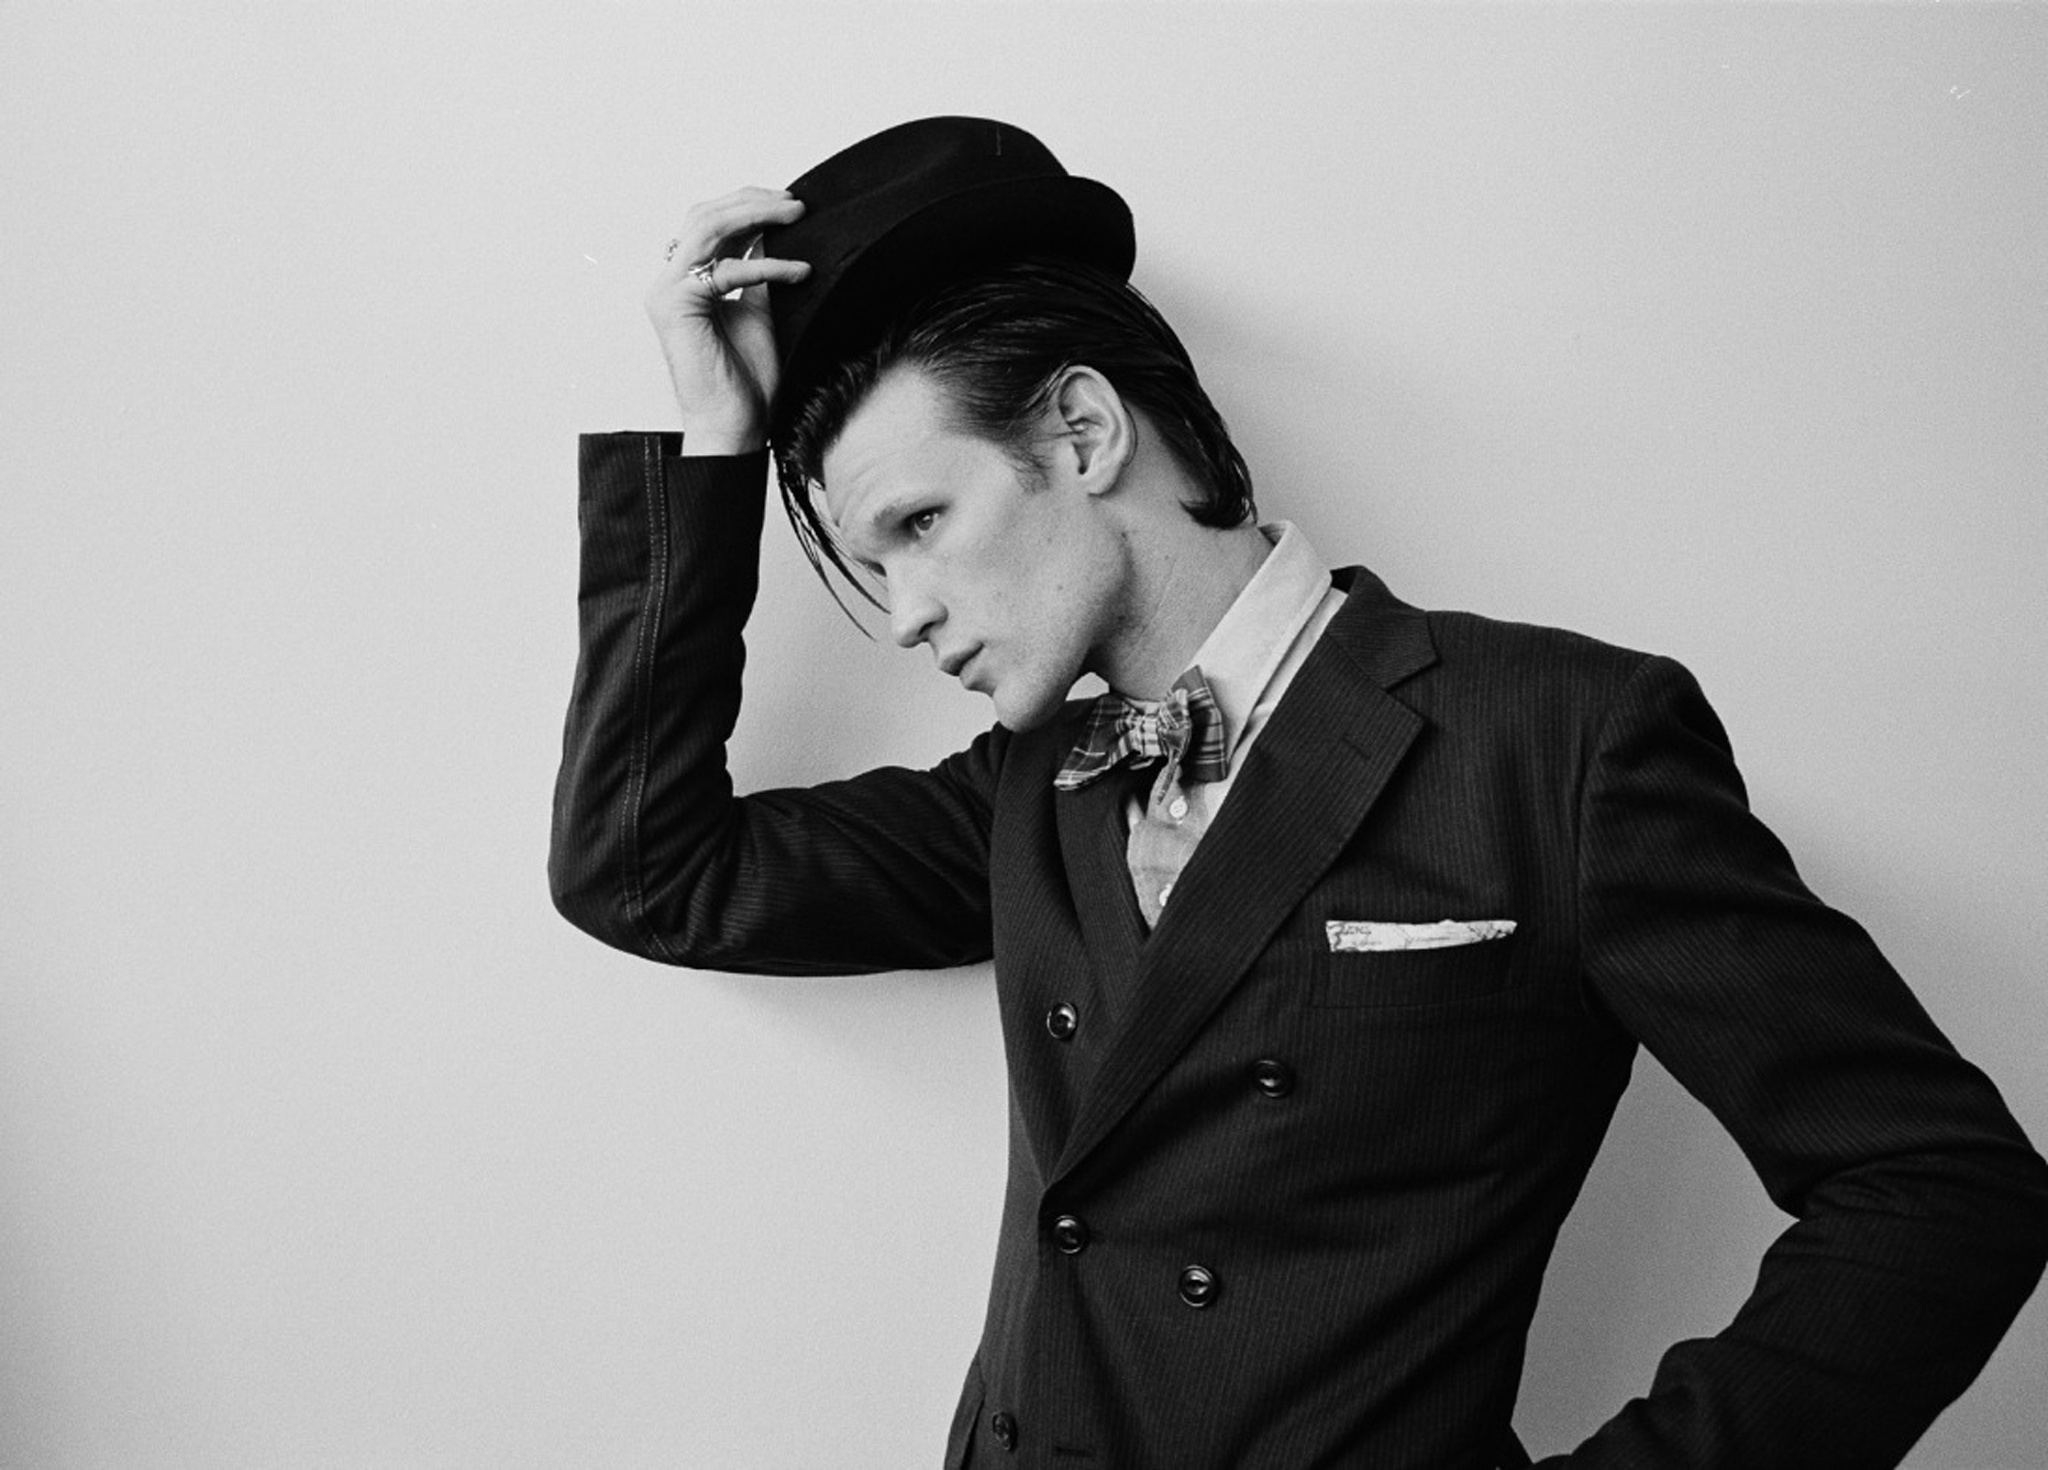 Matt Smith Wallpapers Images Photos Pictures Backgrounds 2048x1470